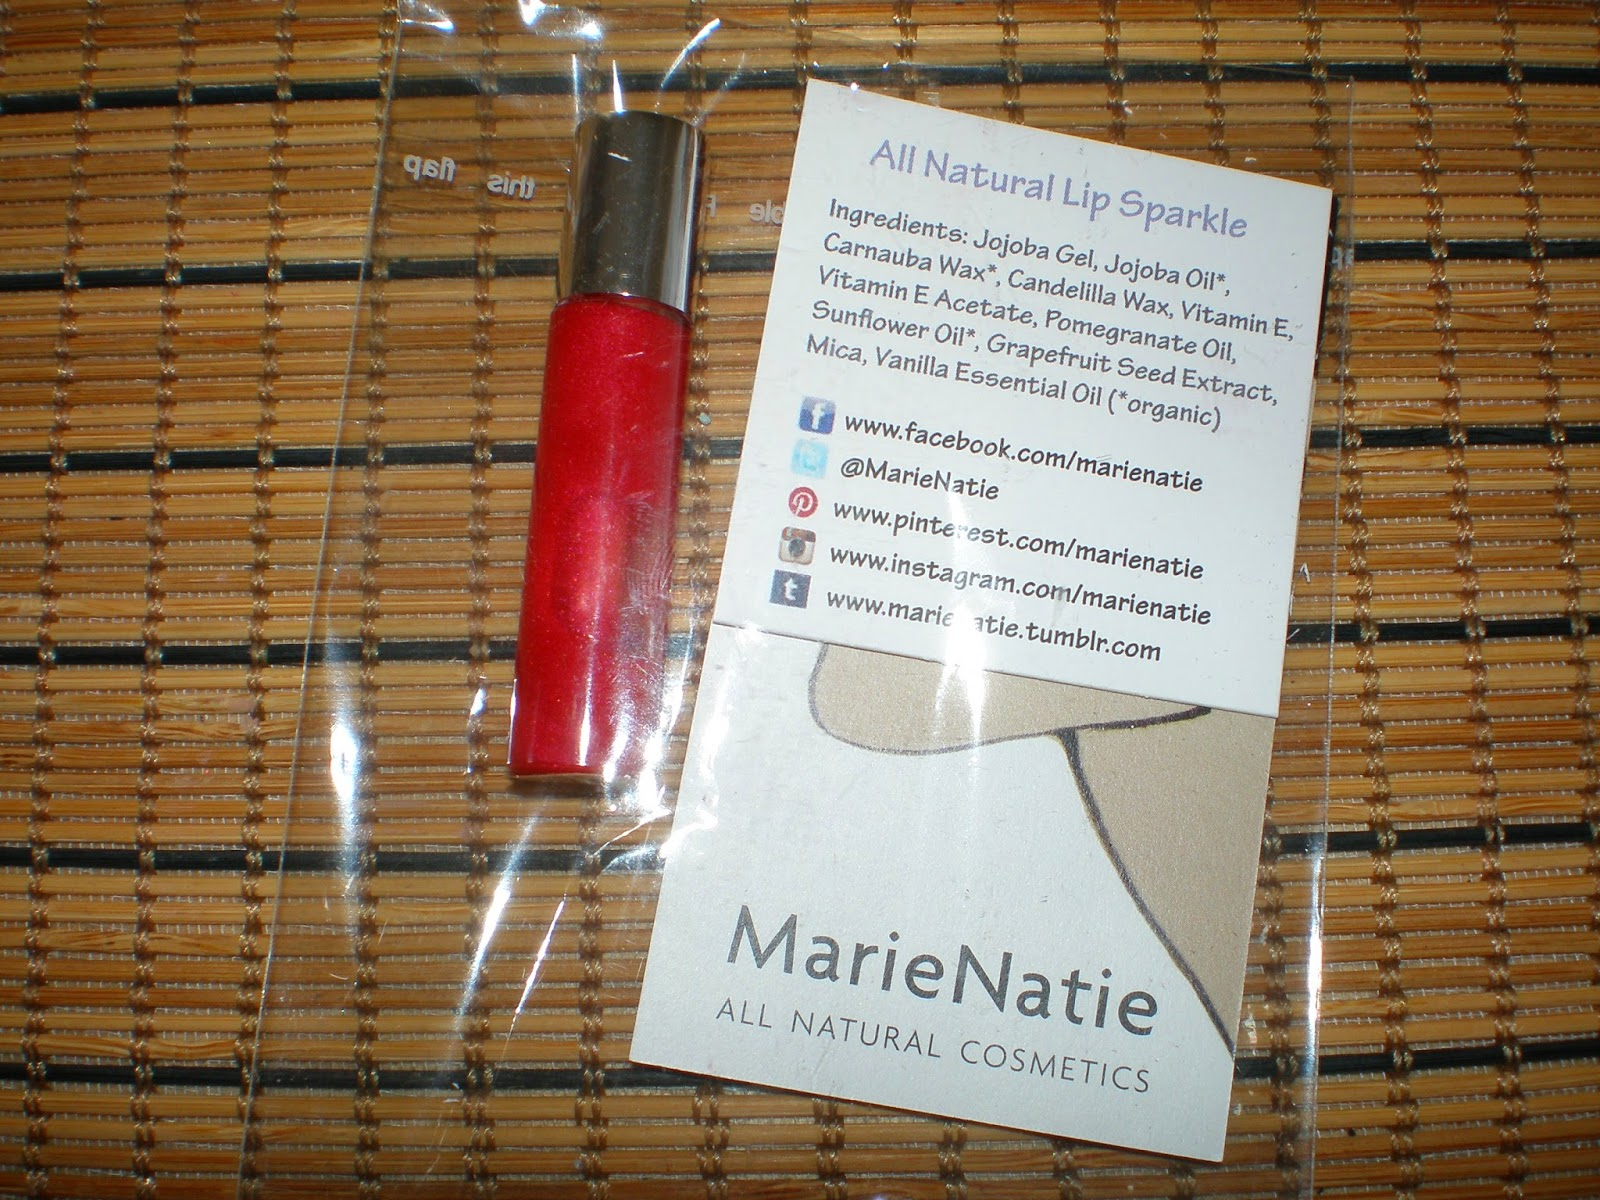 Marie Natie Marie Yang All Natural Lip Sparkle – Marie Natie Love Struck